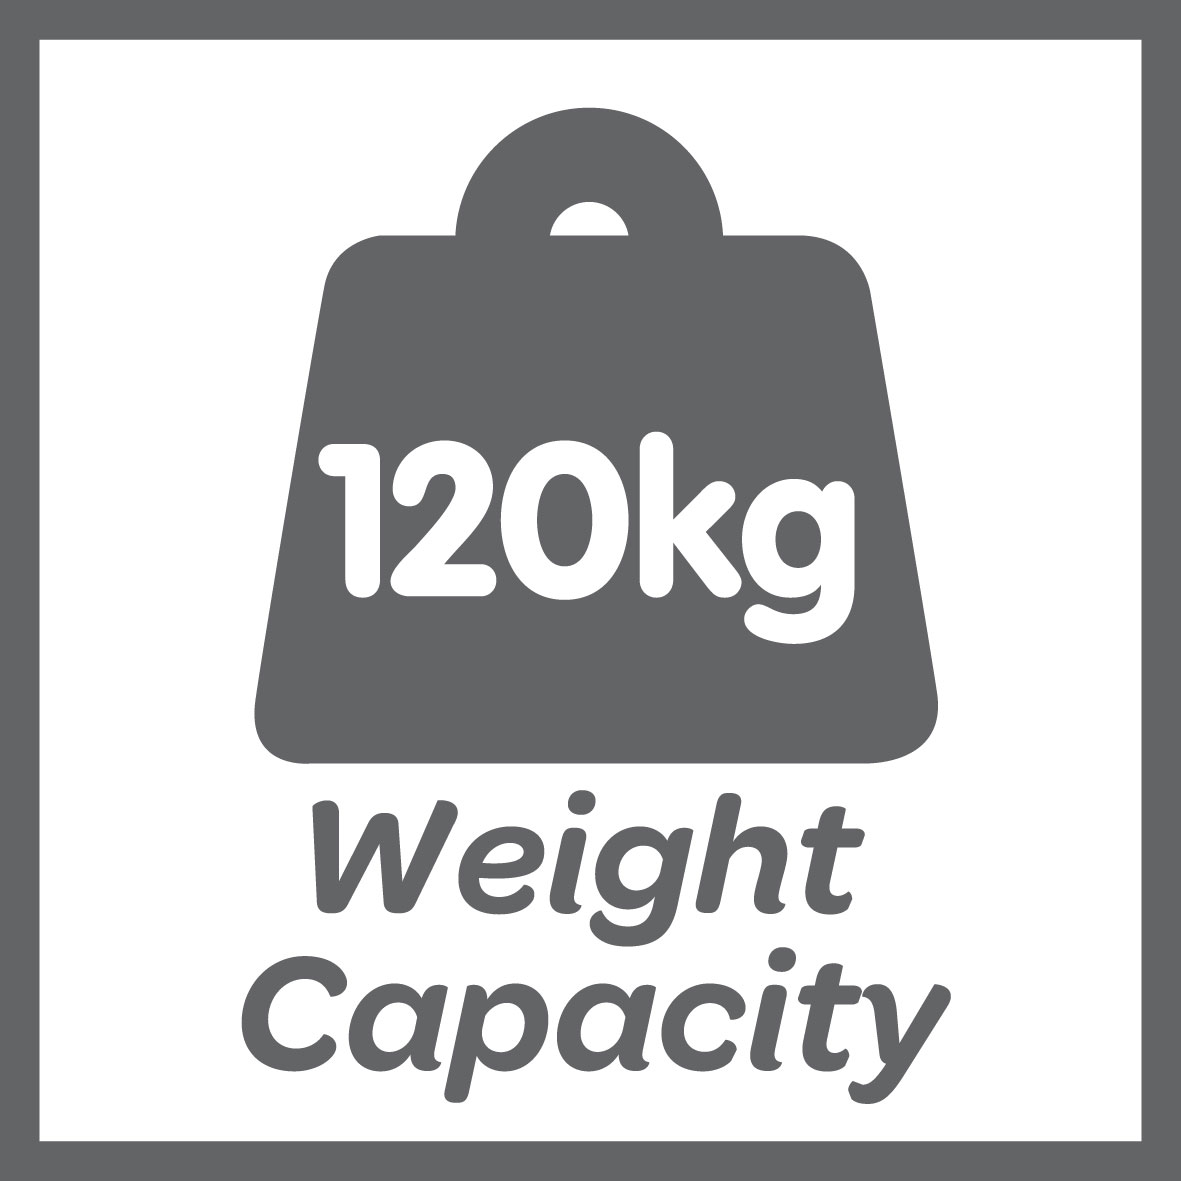 This product has a 120kg weight limit